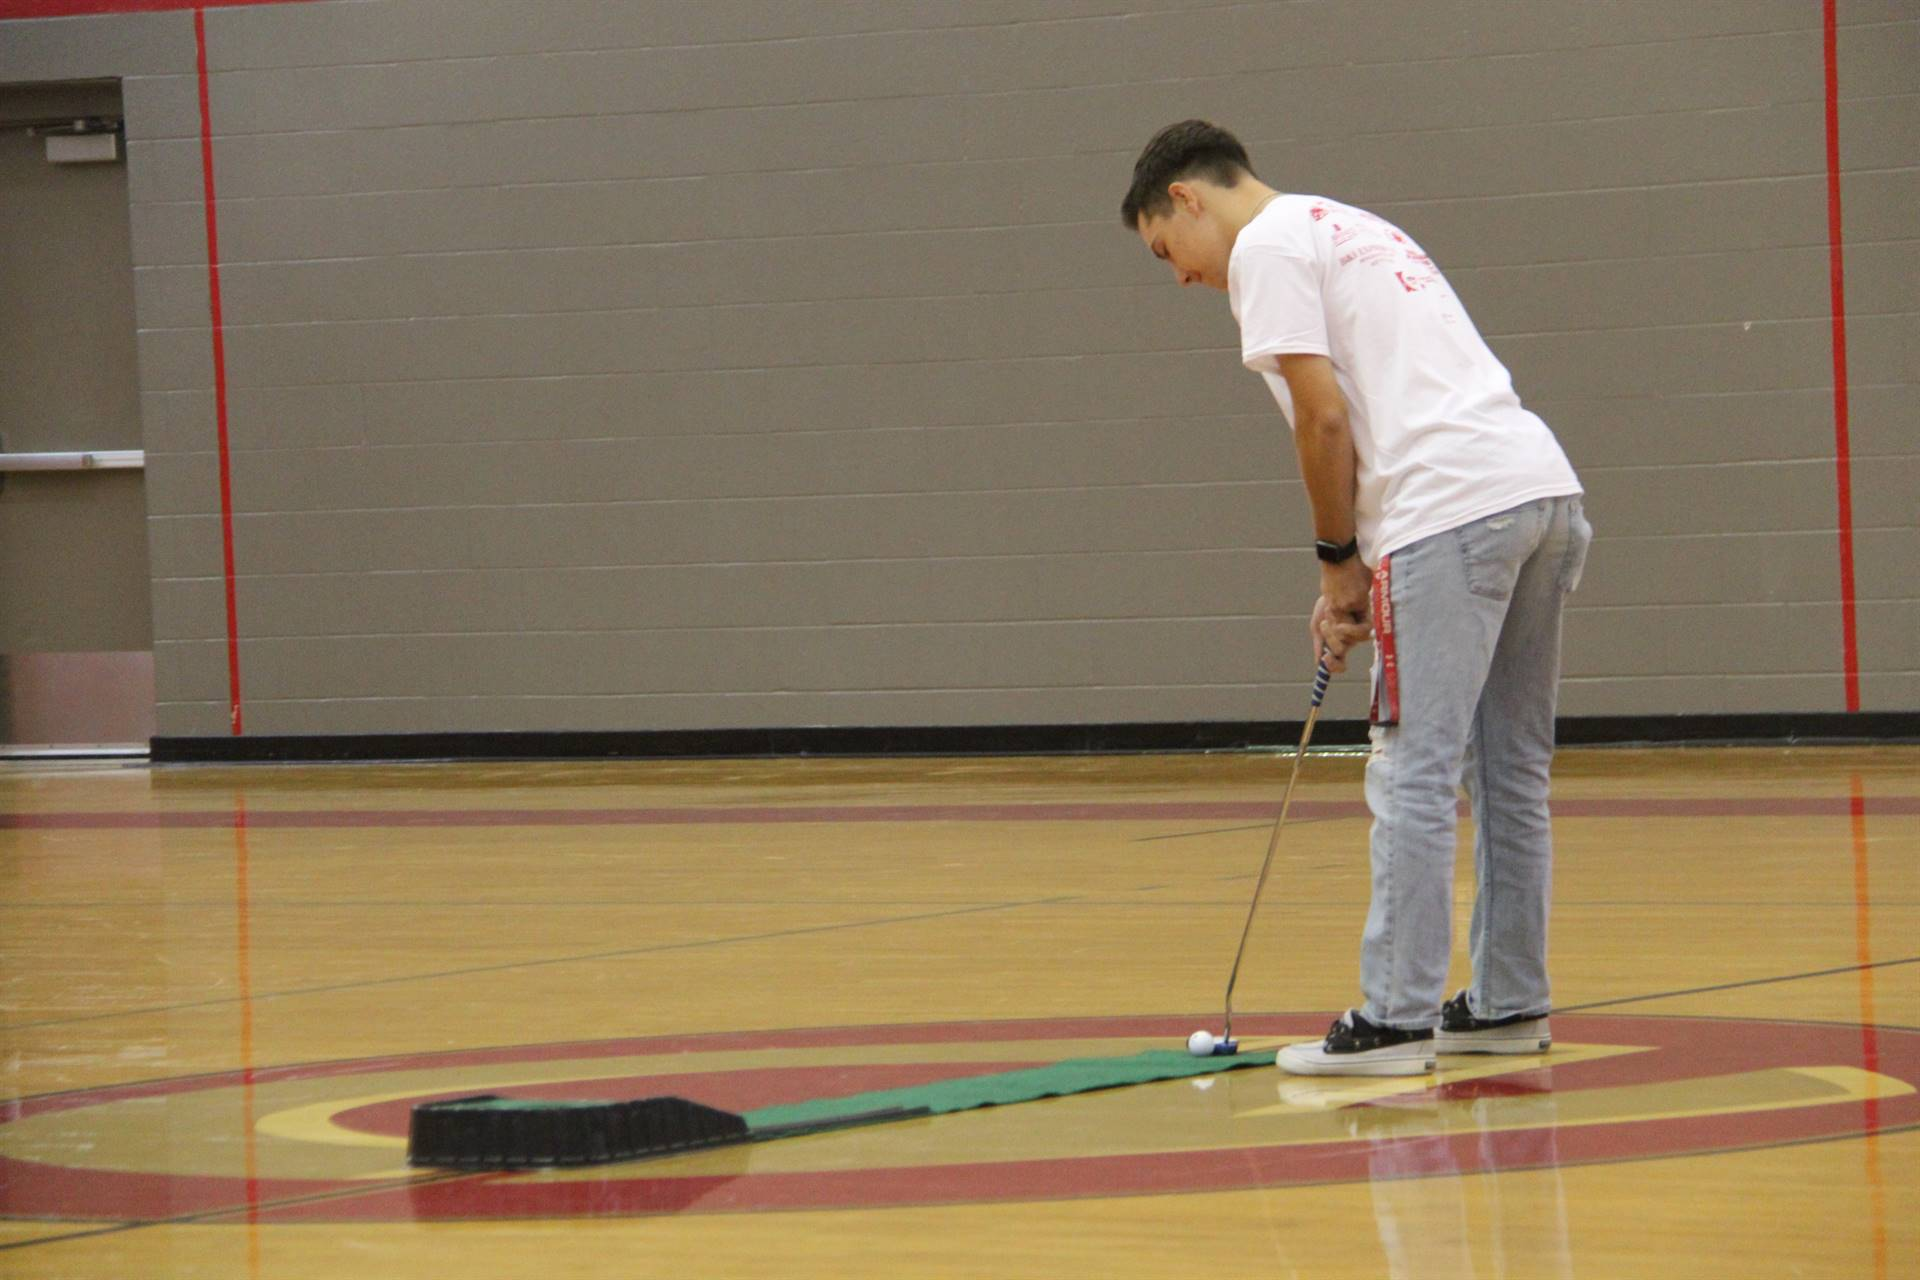 high school golf team member does a putting challenge during high school pep rally